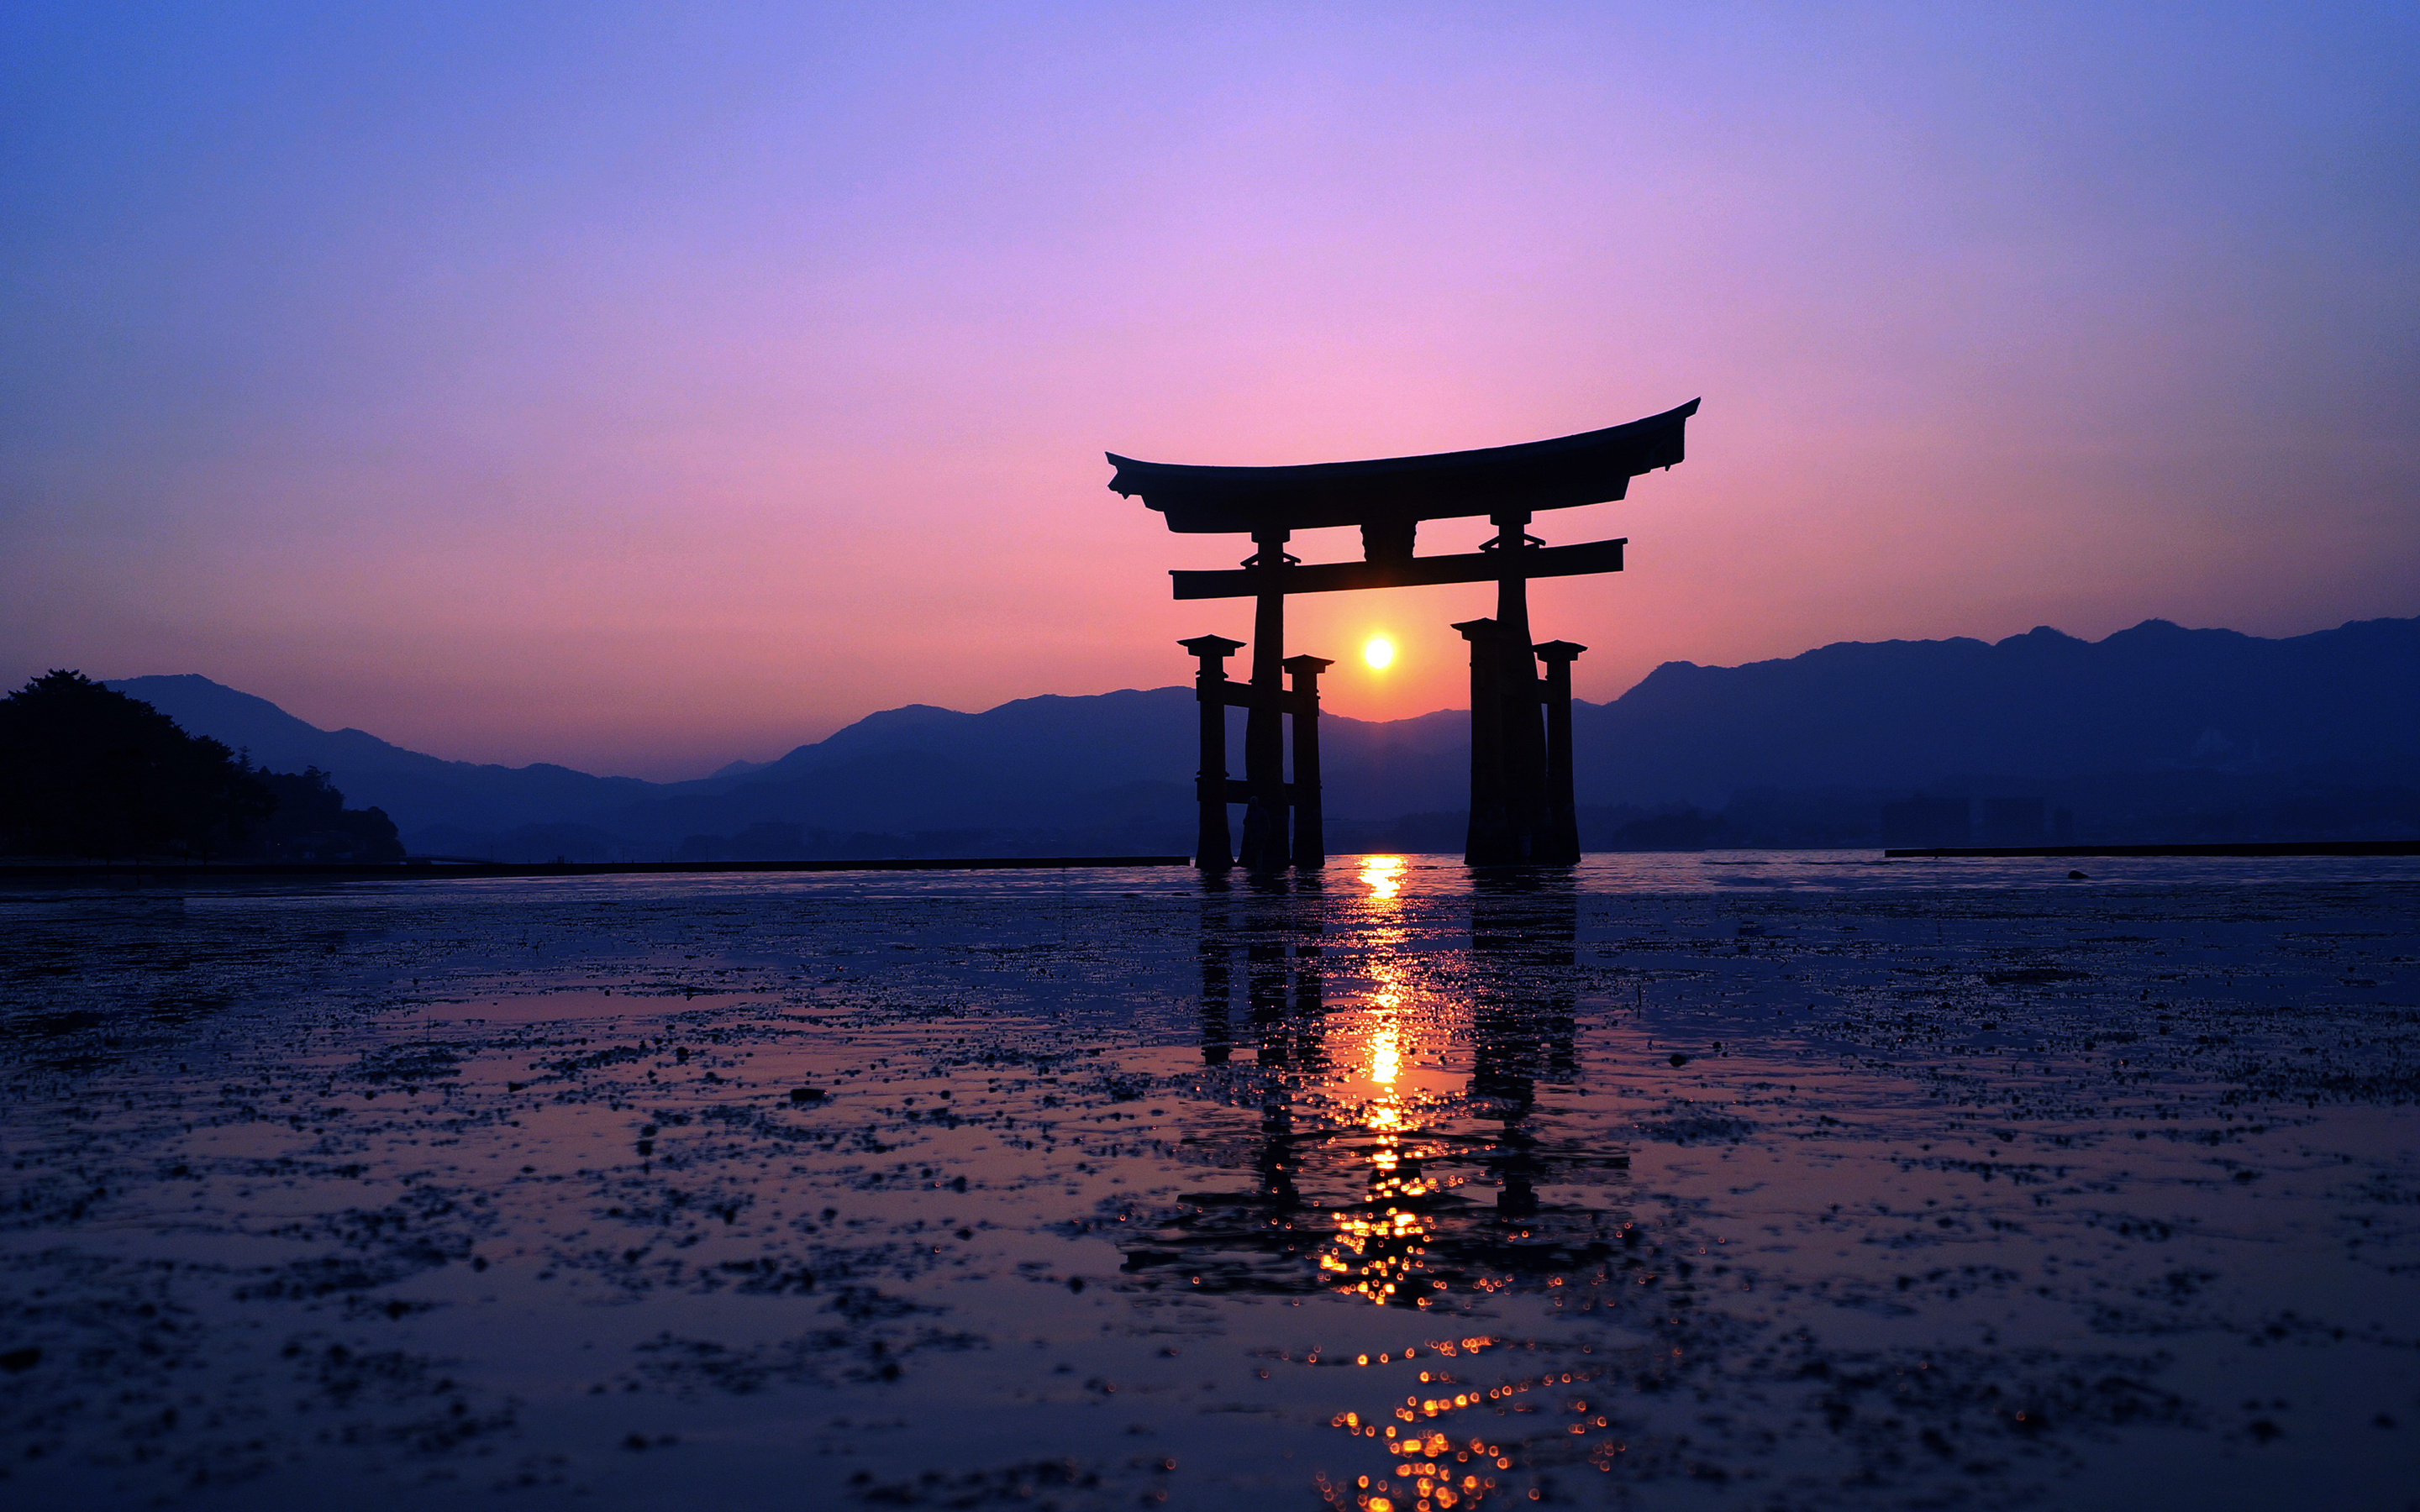 2880x1800 Japan Sunset Purple Evening 4k Macbook Pro Retina Hd 4k Wallpapers Images Backgrounds Photos And Pictures